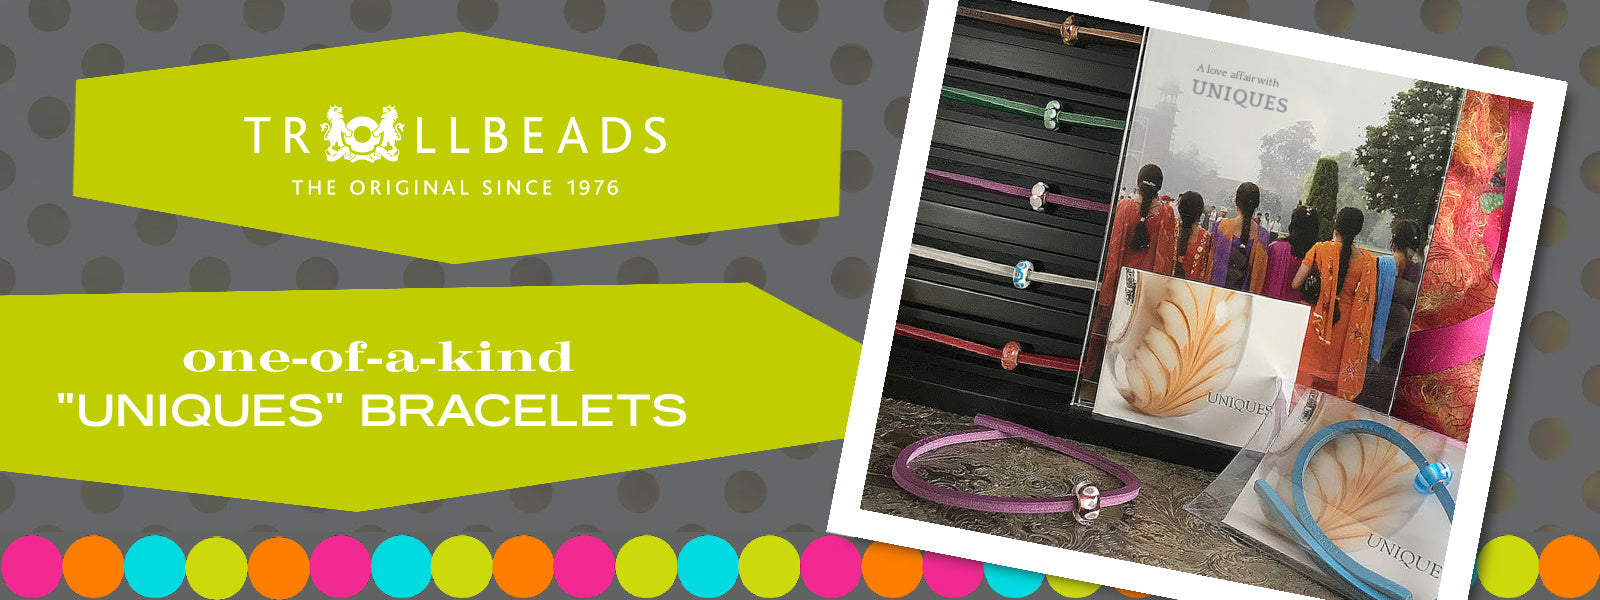 Trollbeads UNIQUES are one-of-a-kind glass beads handmade individually by 100% artisan-owned workshops in India and Lithuania. The one-of-a-kind UNIQUES glass beads offered at Suzie Q Studio also include a colour-coordinated Trollbeads leather bracelet.